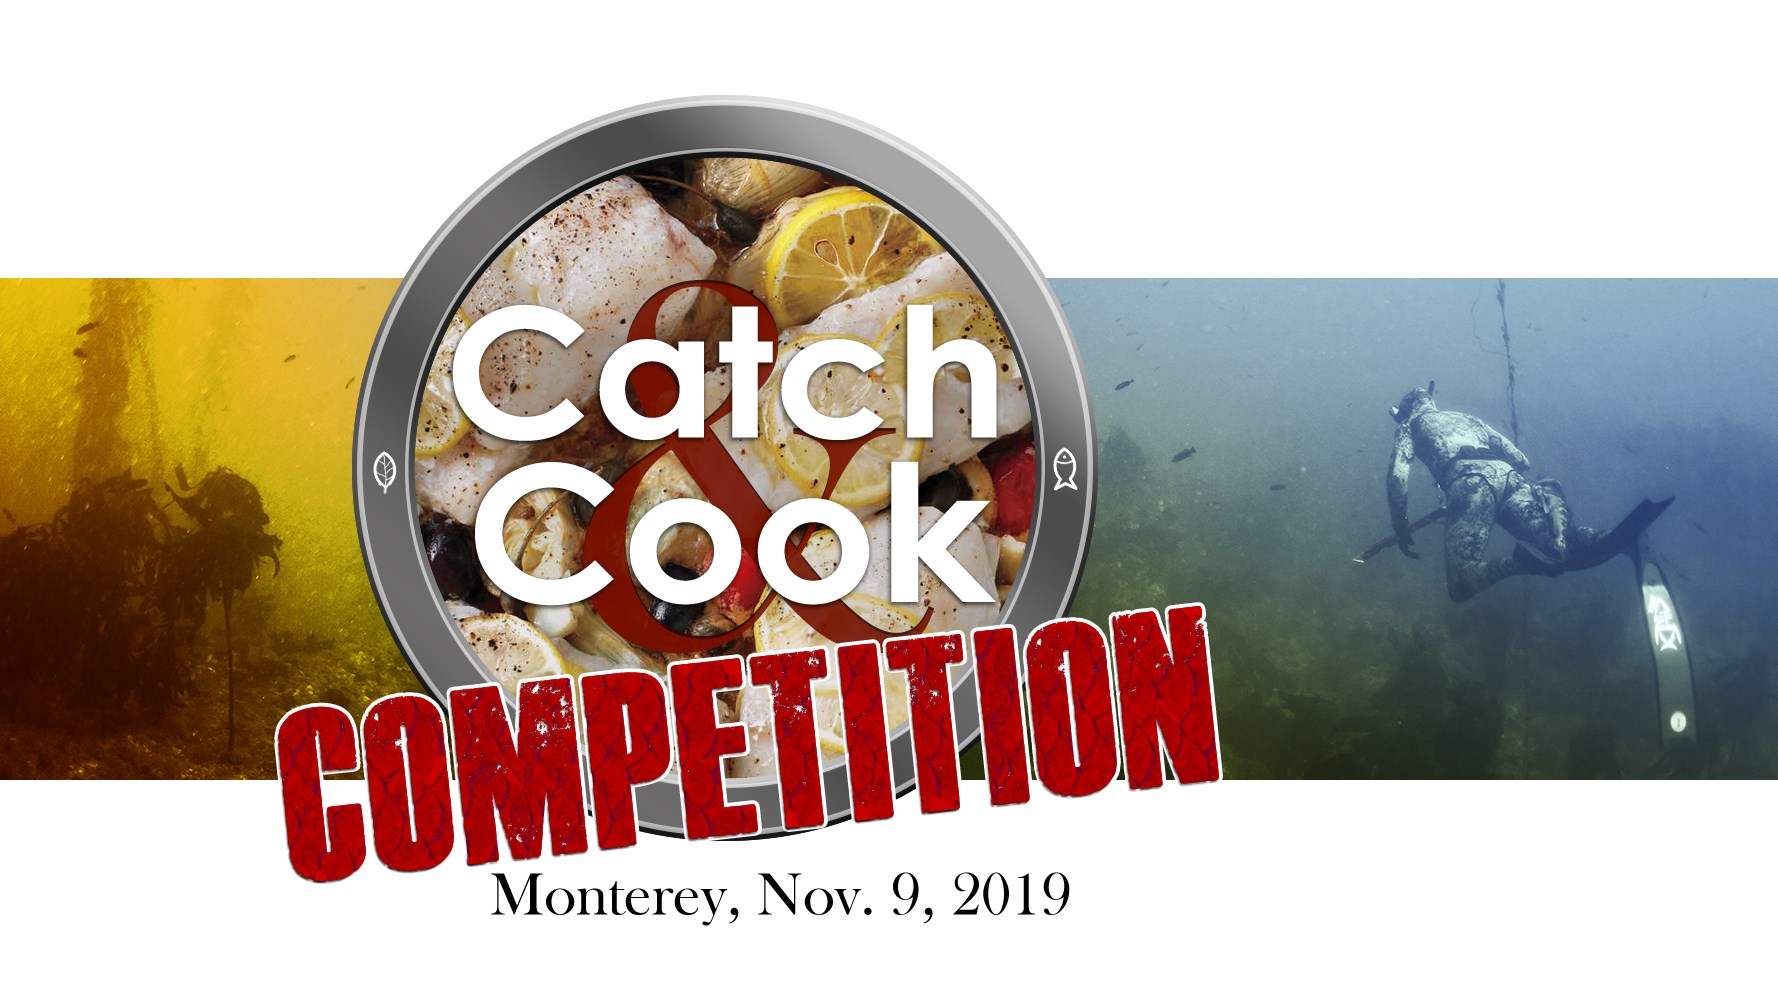 Unique Spearo Competition Promoting Good Cooking, Ocean Conservation